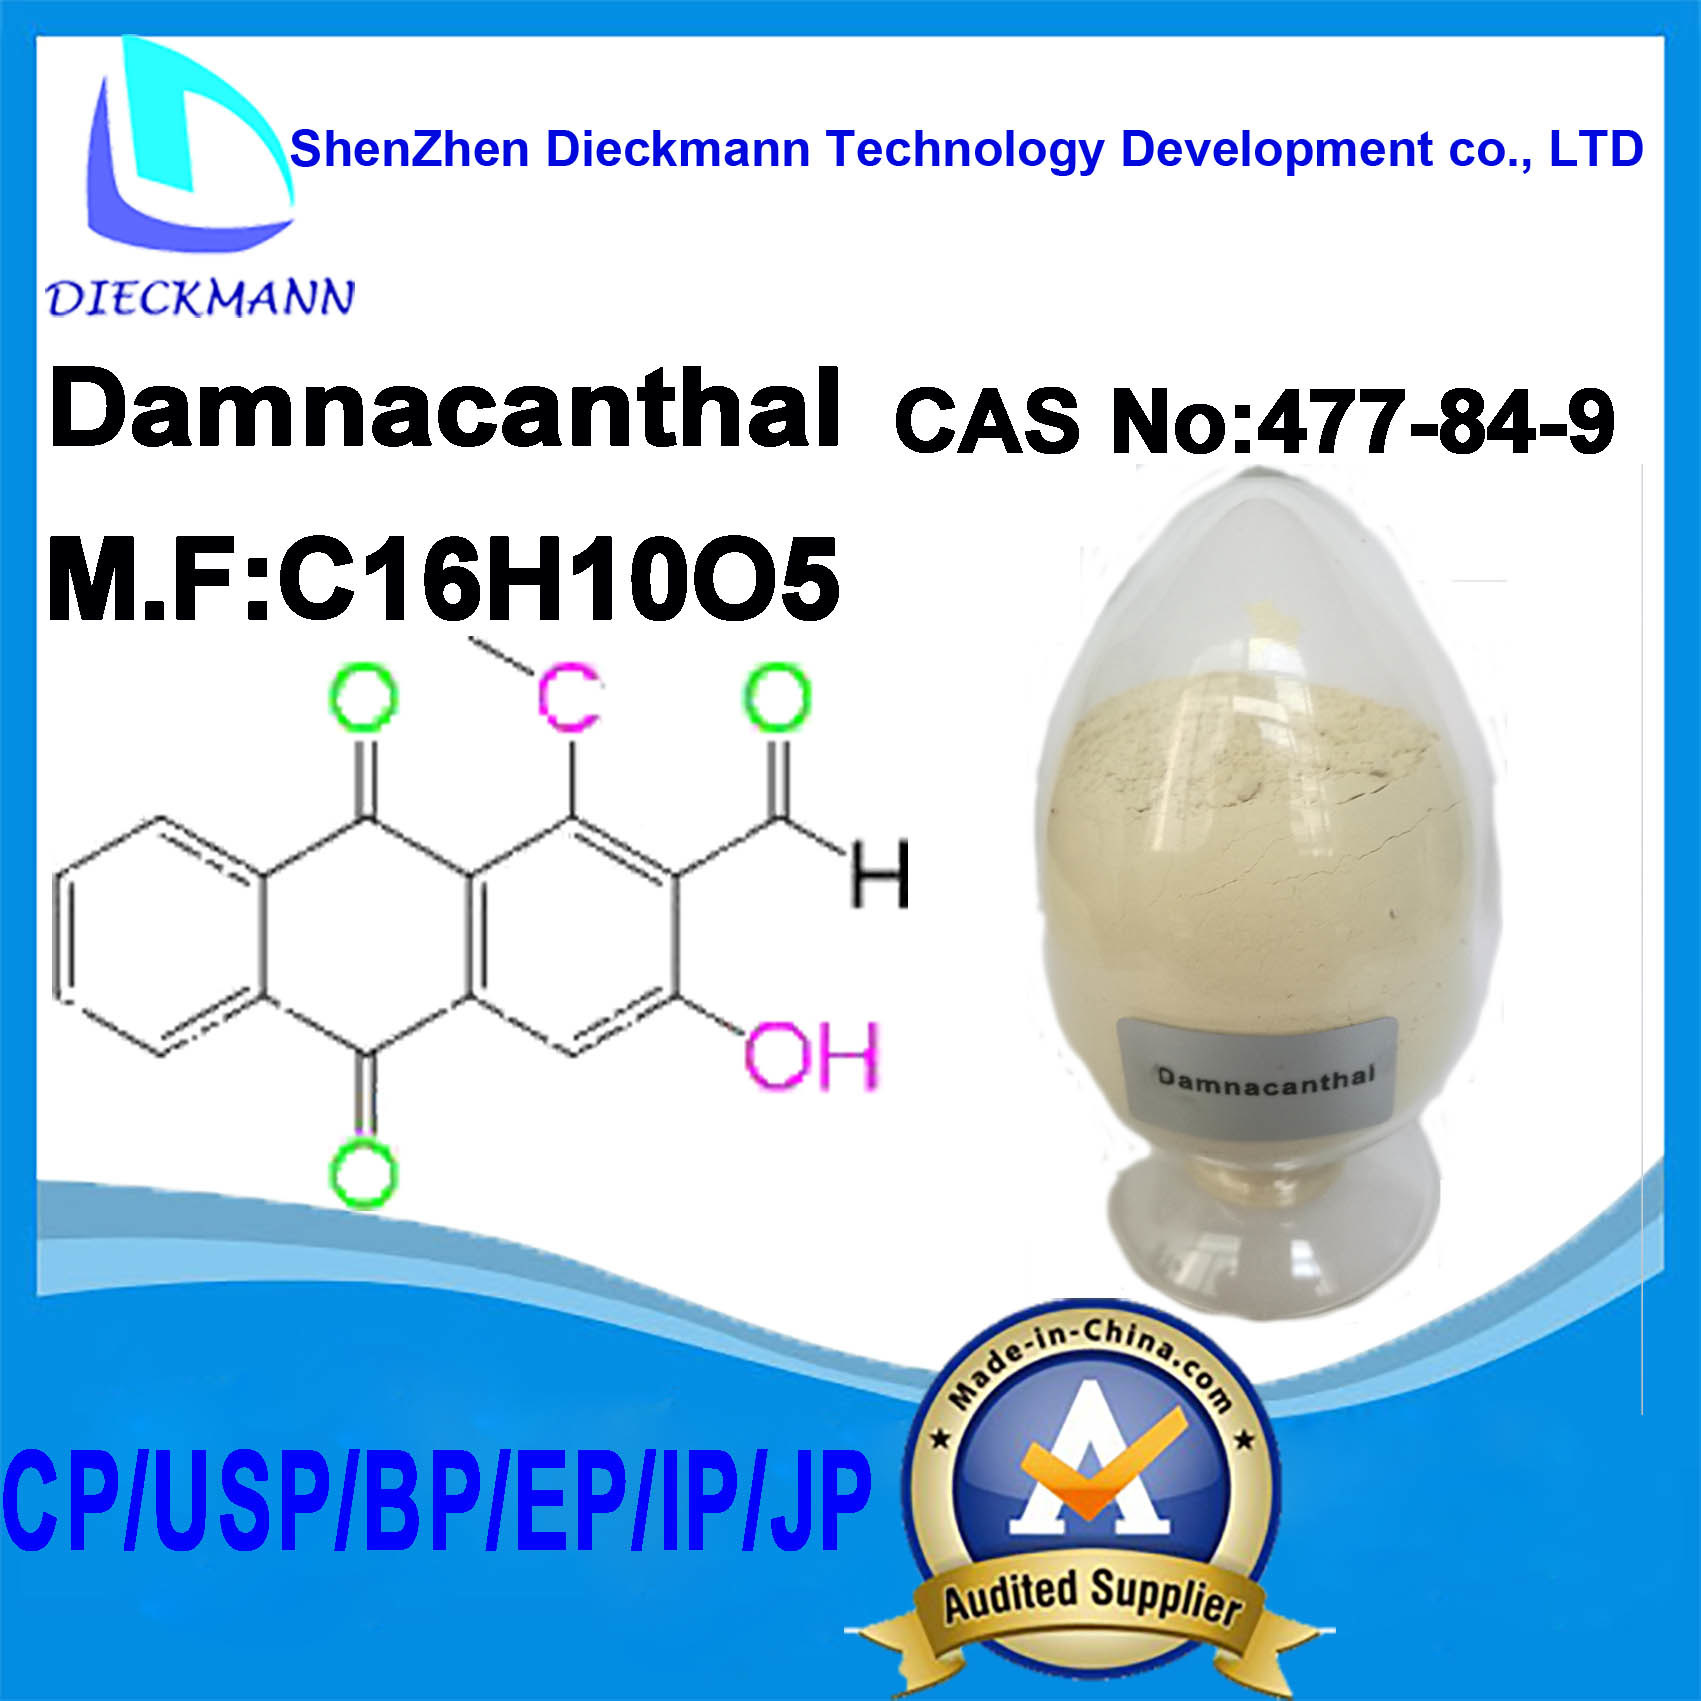 Damnacanthal CAS No 477-84-9 for Traditional Medicine for Pharmaceuticals